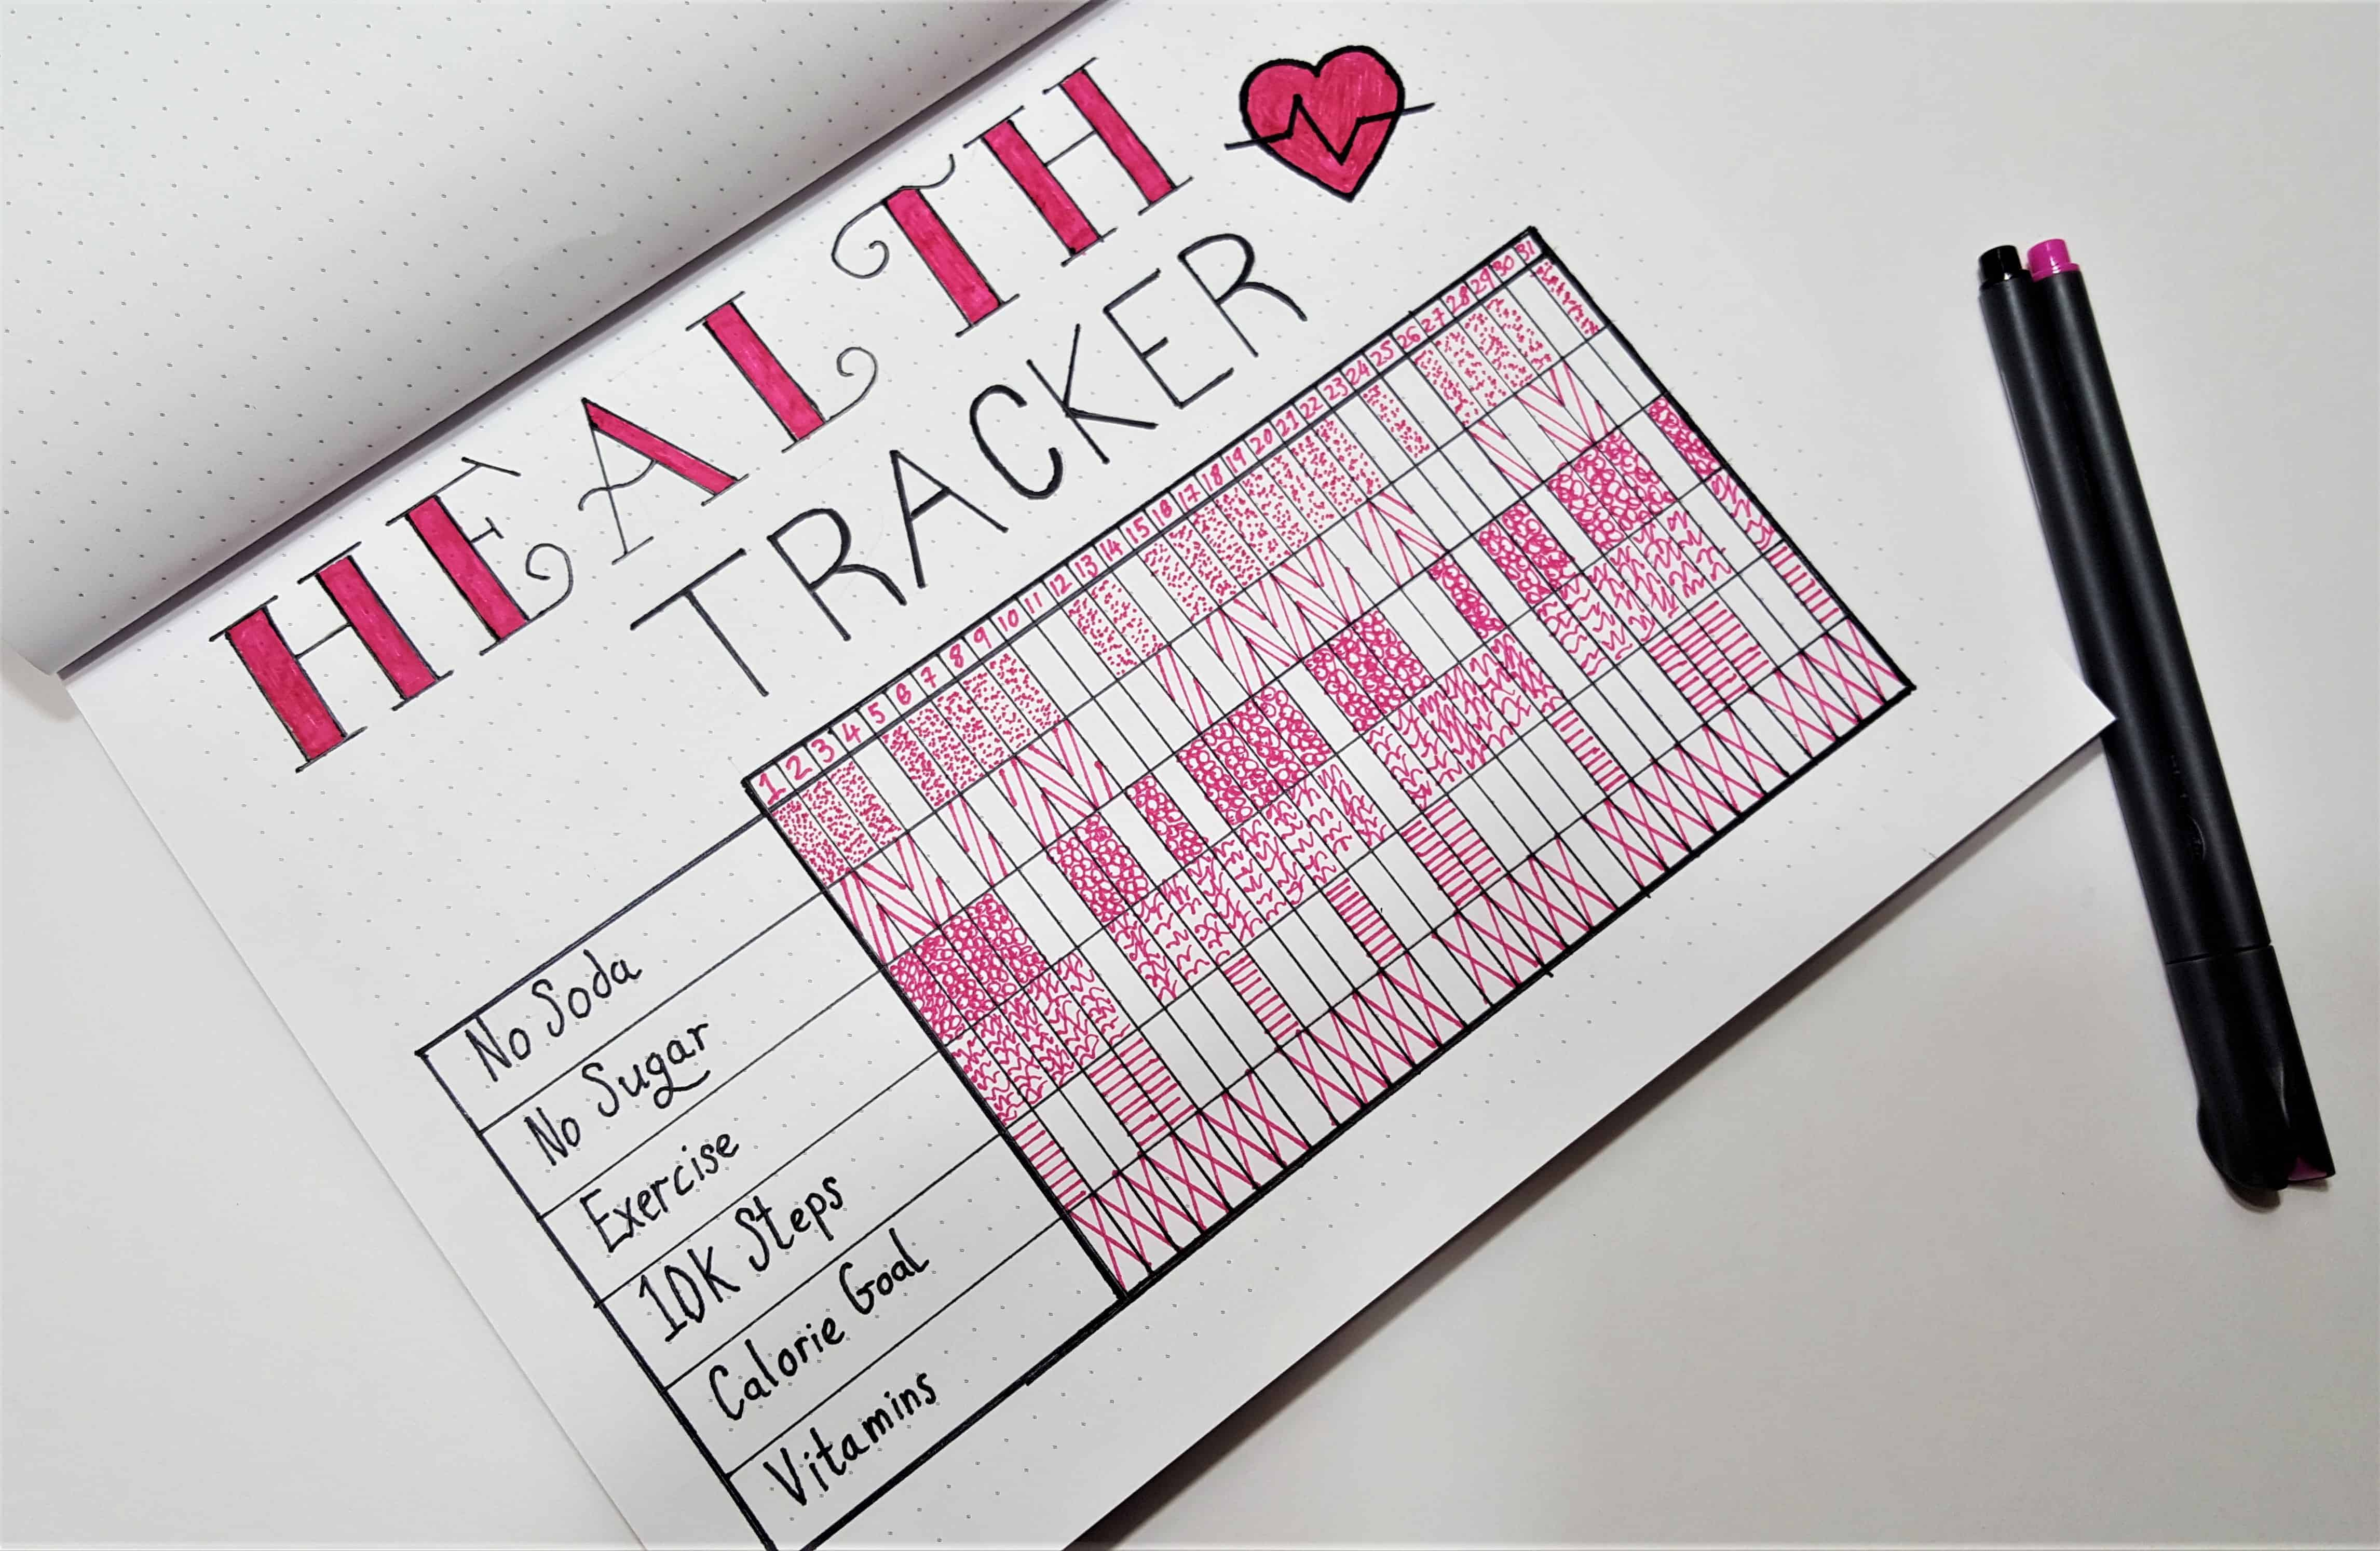 Bullet Journal Ideas to Make Life Easier - Weight Loss Tracker Bullet Journal | Use your bullet journal to track your weight loss, meal planning, health, exercise and more. Weight Loss Tracker Spread & Health Tracker Spread.